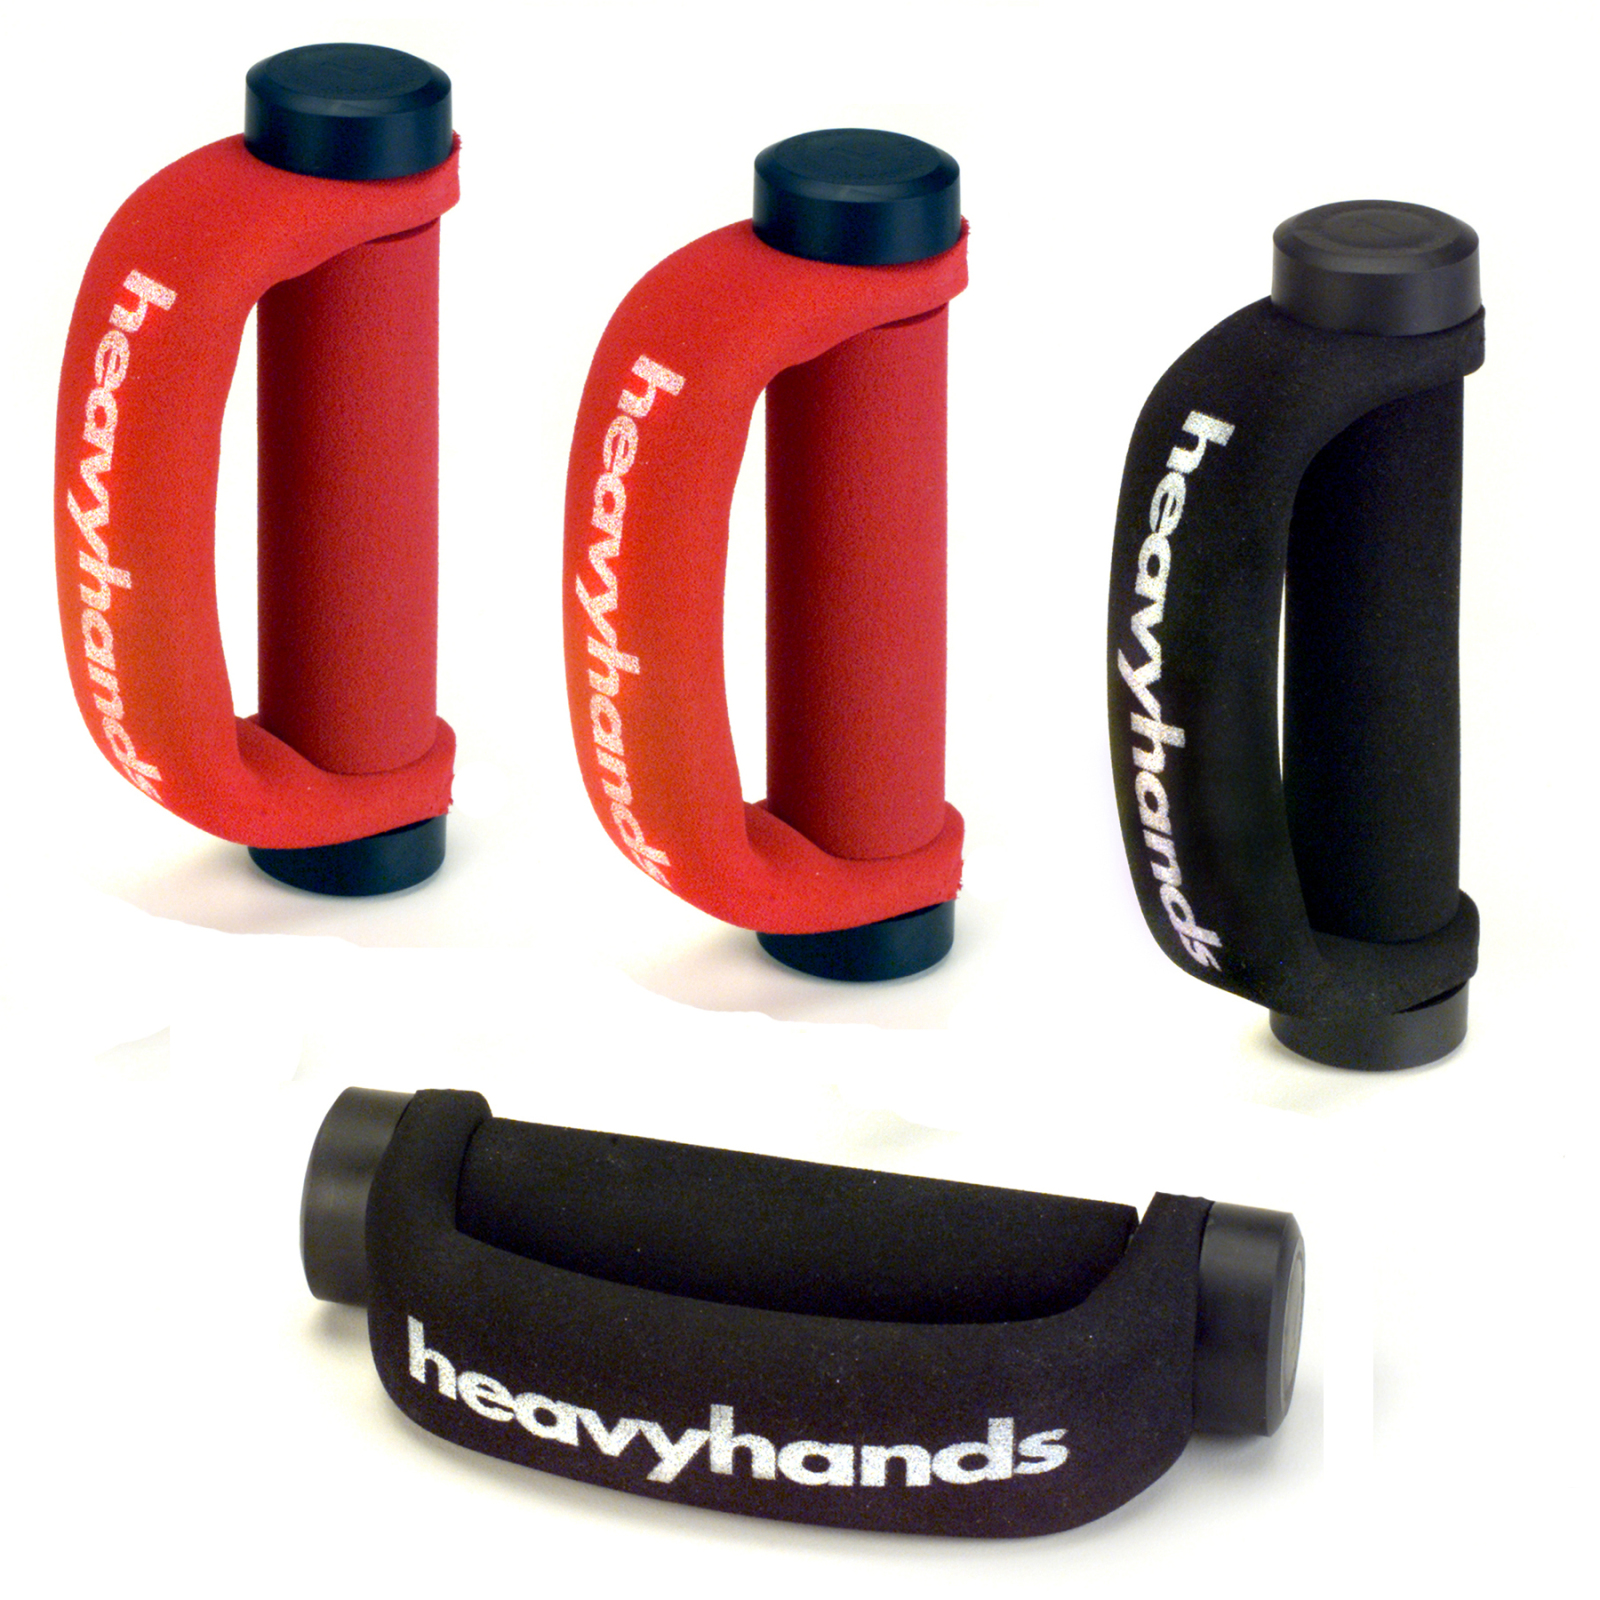 HeavyHands Hand Weights for Cardio Training